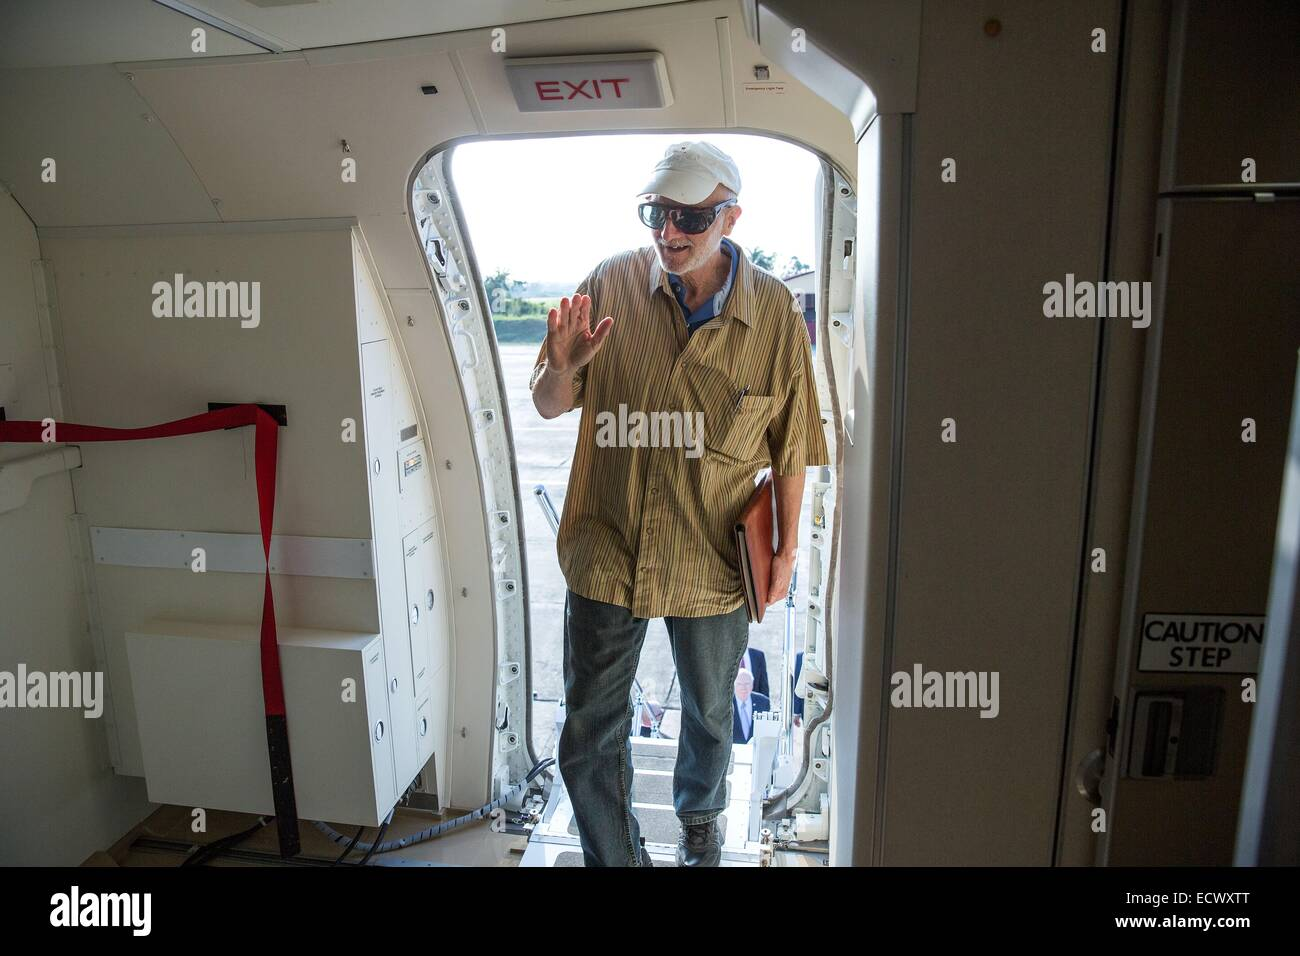 USAID contractor Alan Gross, imprisoned in Cuba for five years, waves as he boards a government airplane following Stock Photo